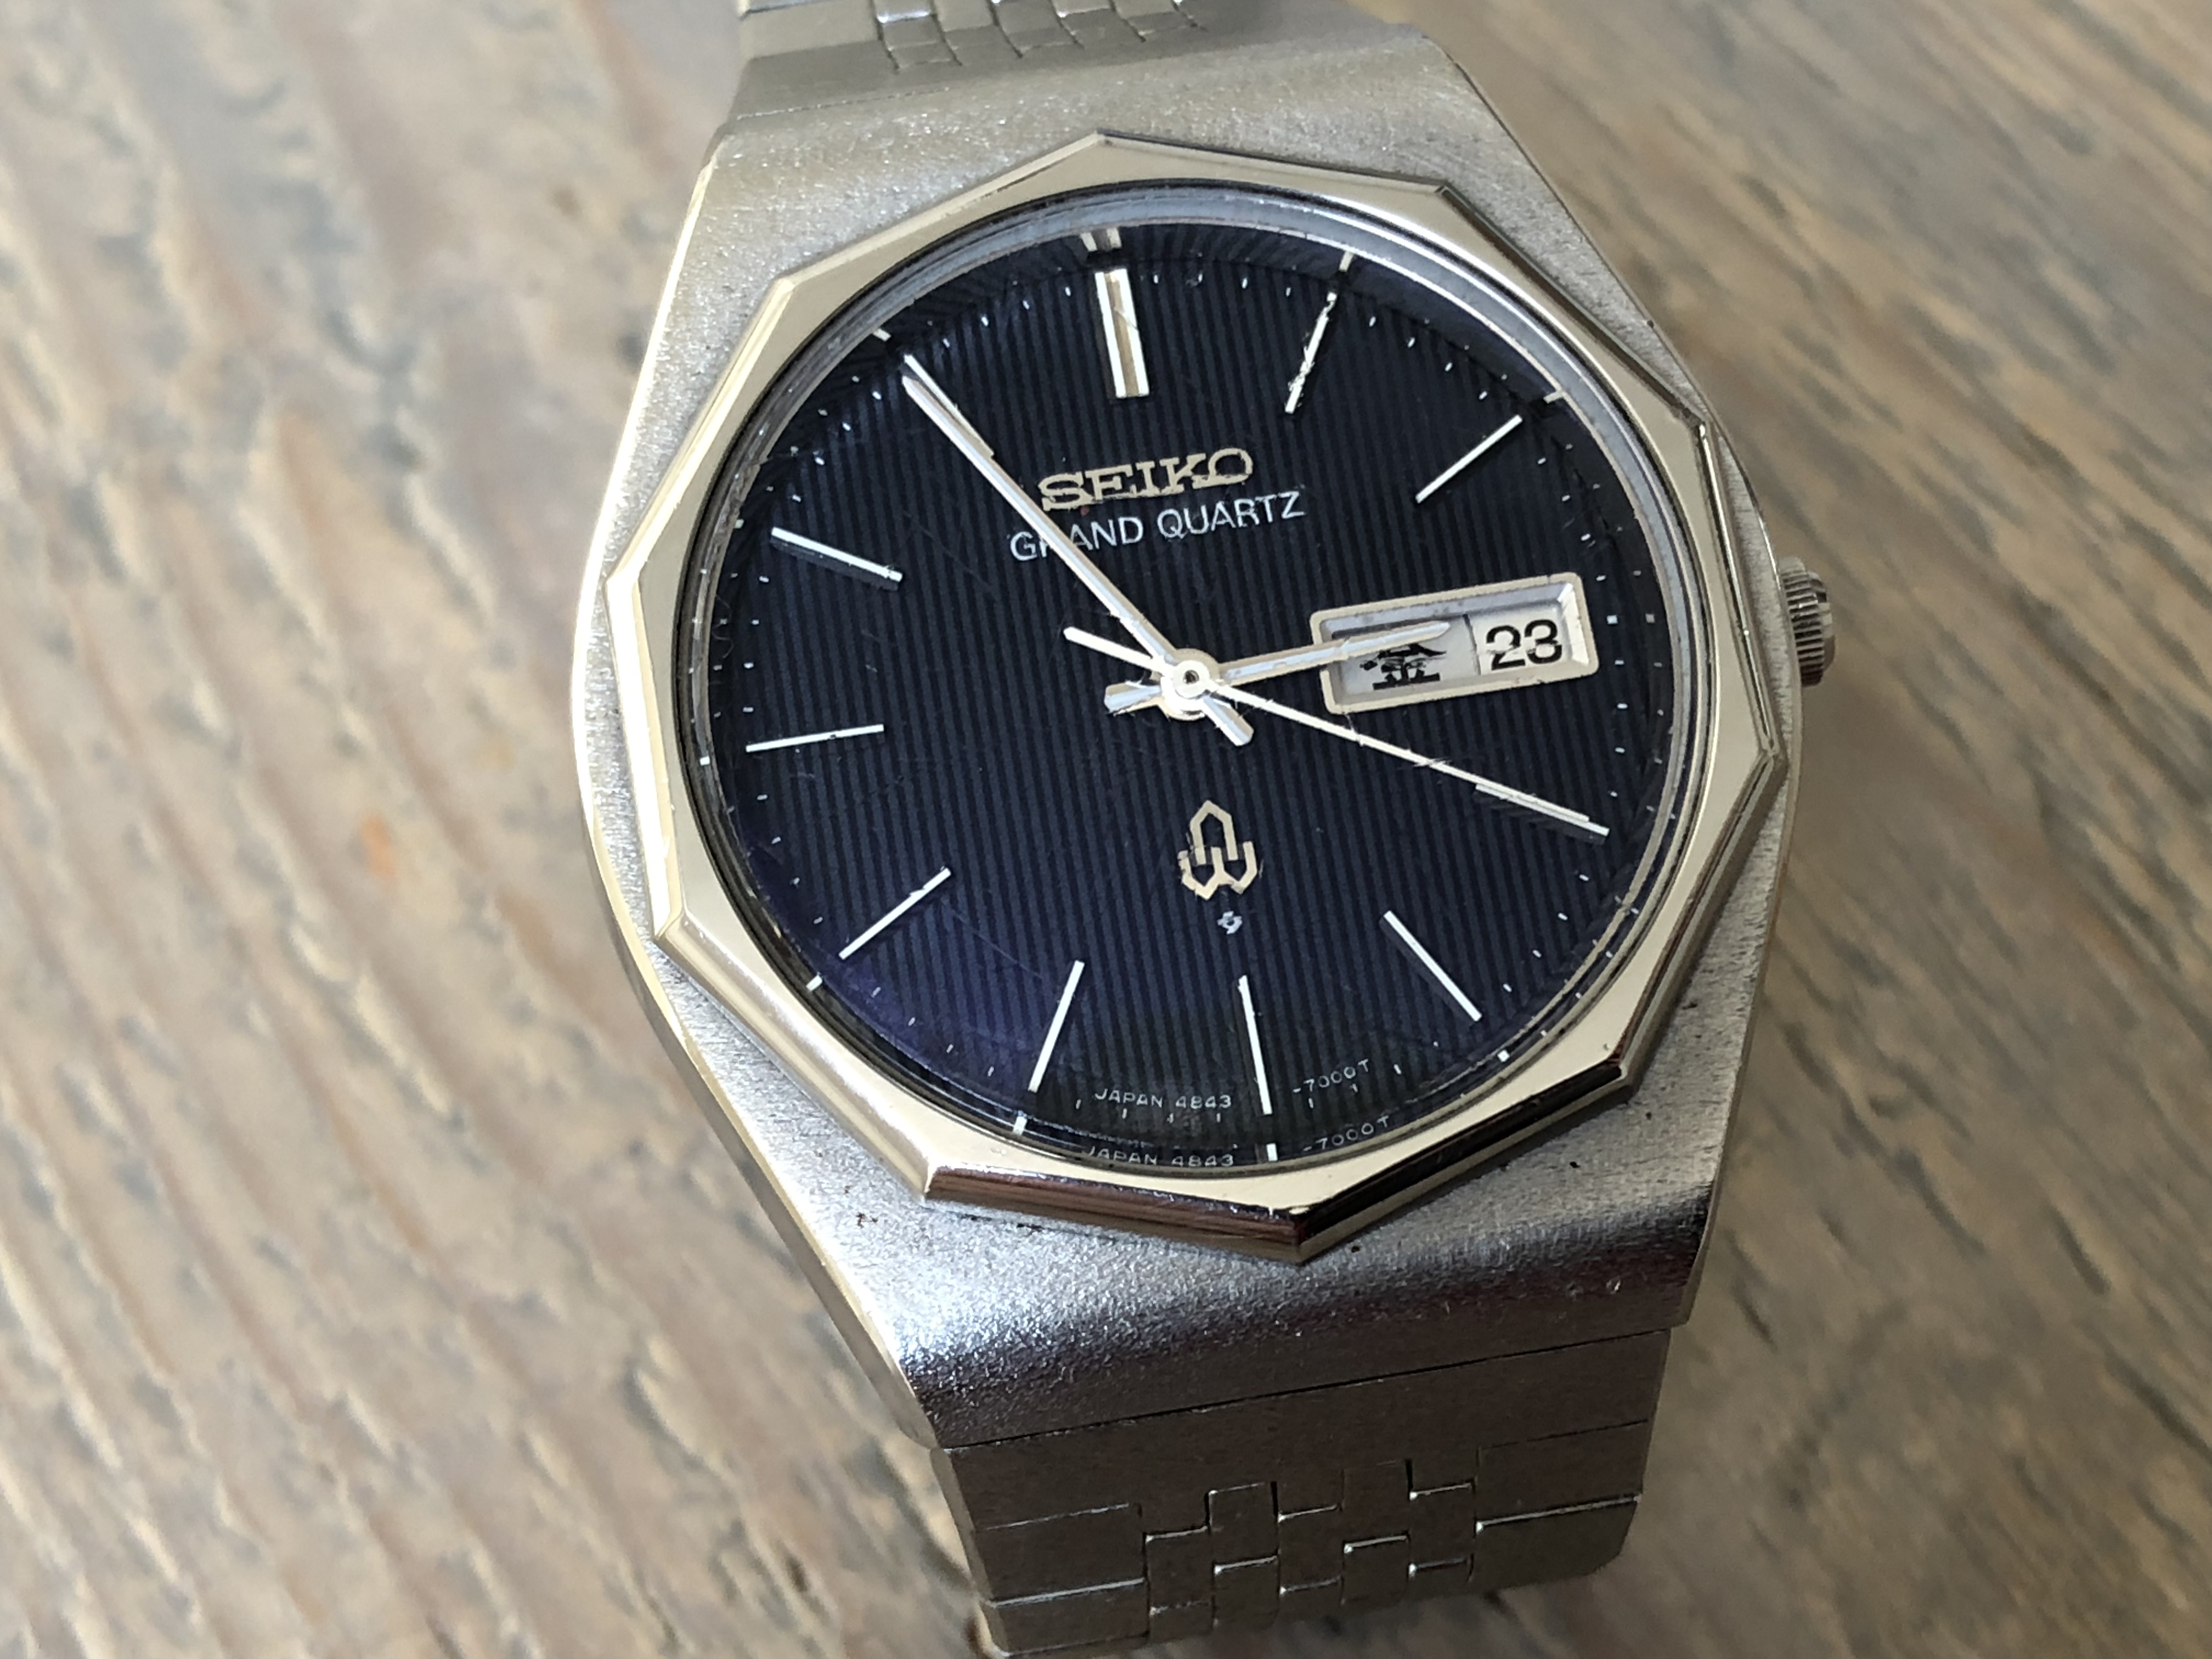 Seiko Grand Quartz 4843-7000 (sold)